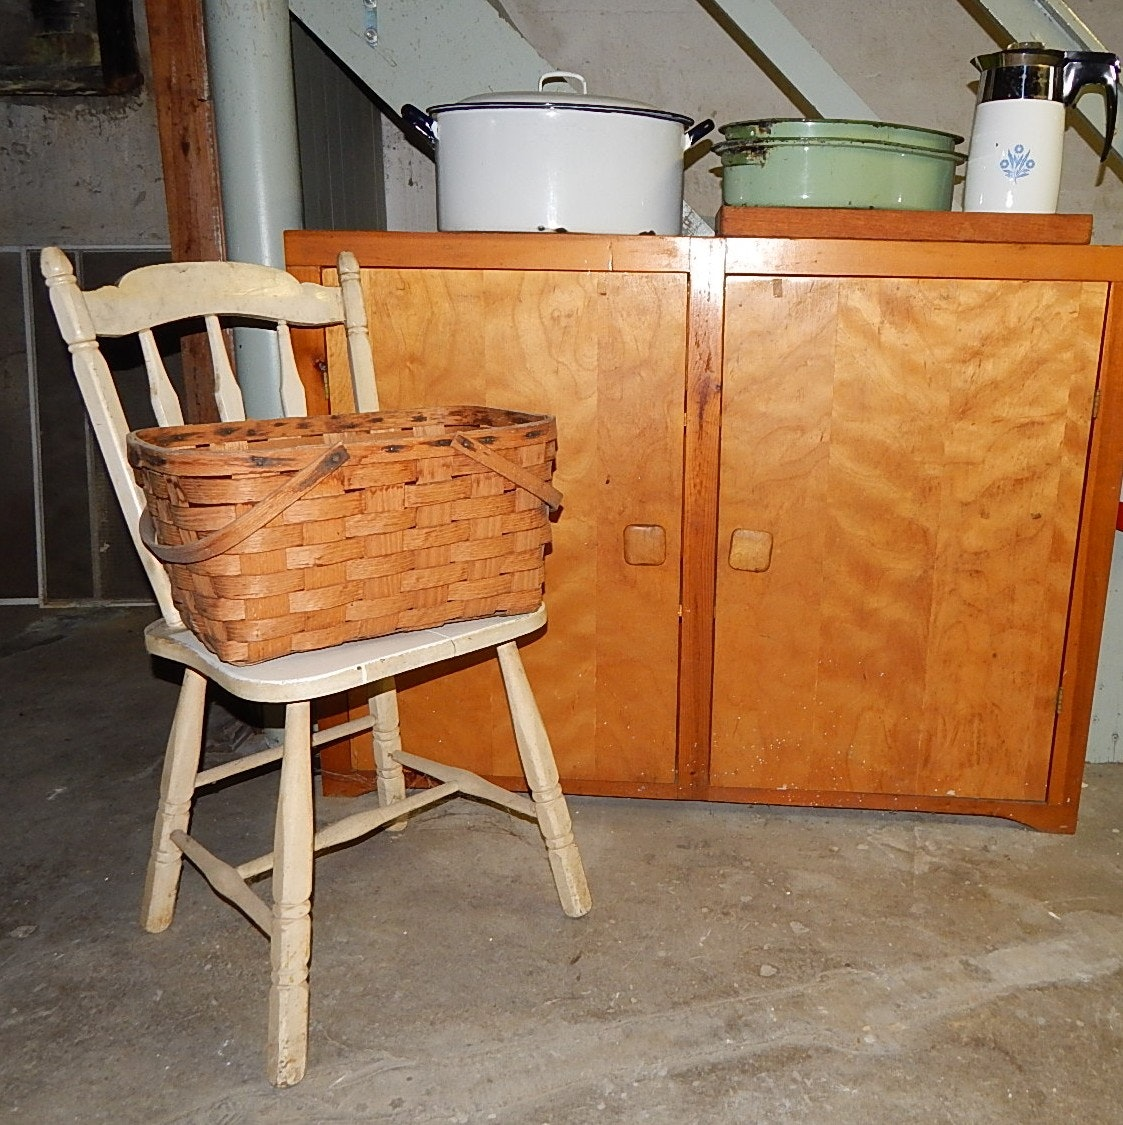 Cabinet, Chair, Porcelain Roasters